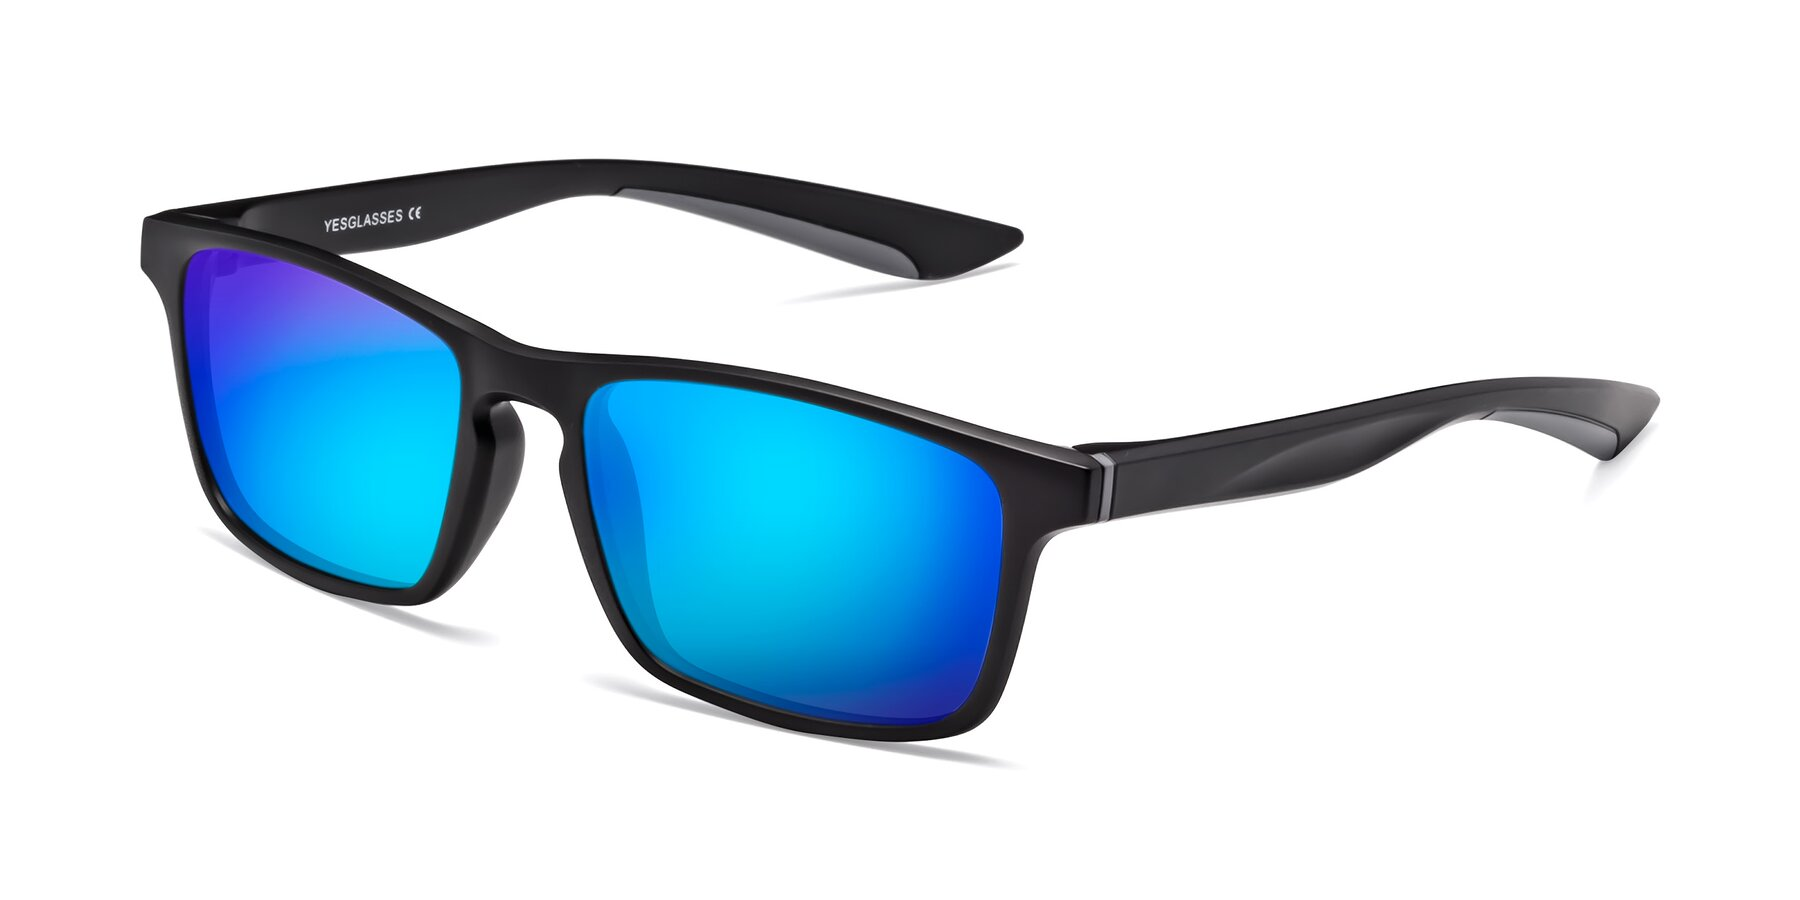 Angle of Passion in Matte Black-Gray with Blue Mirrored Lenses